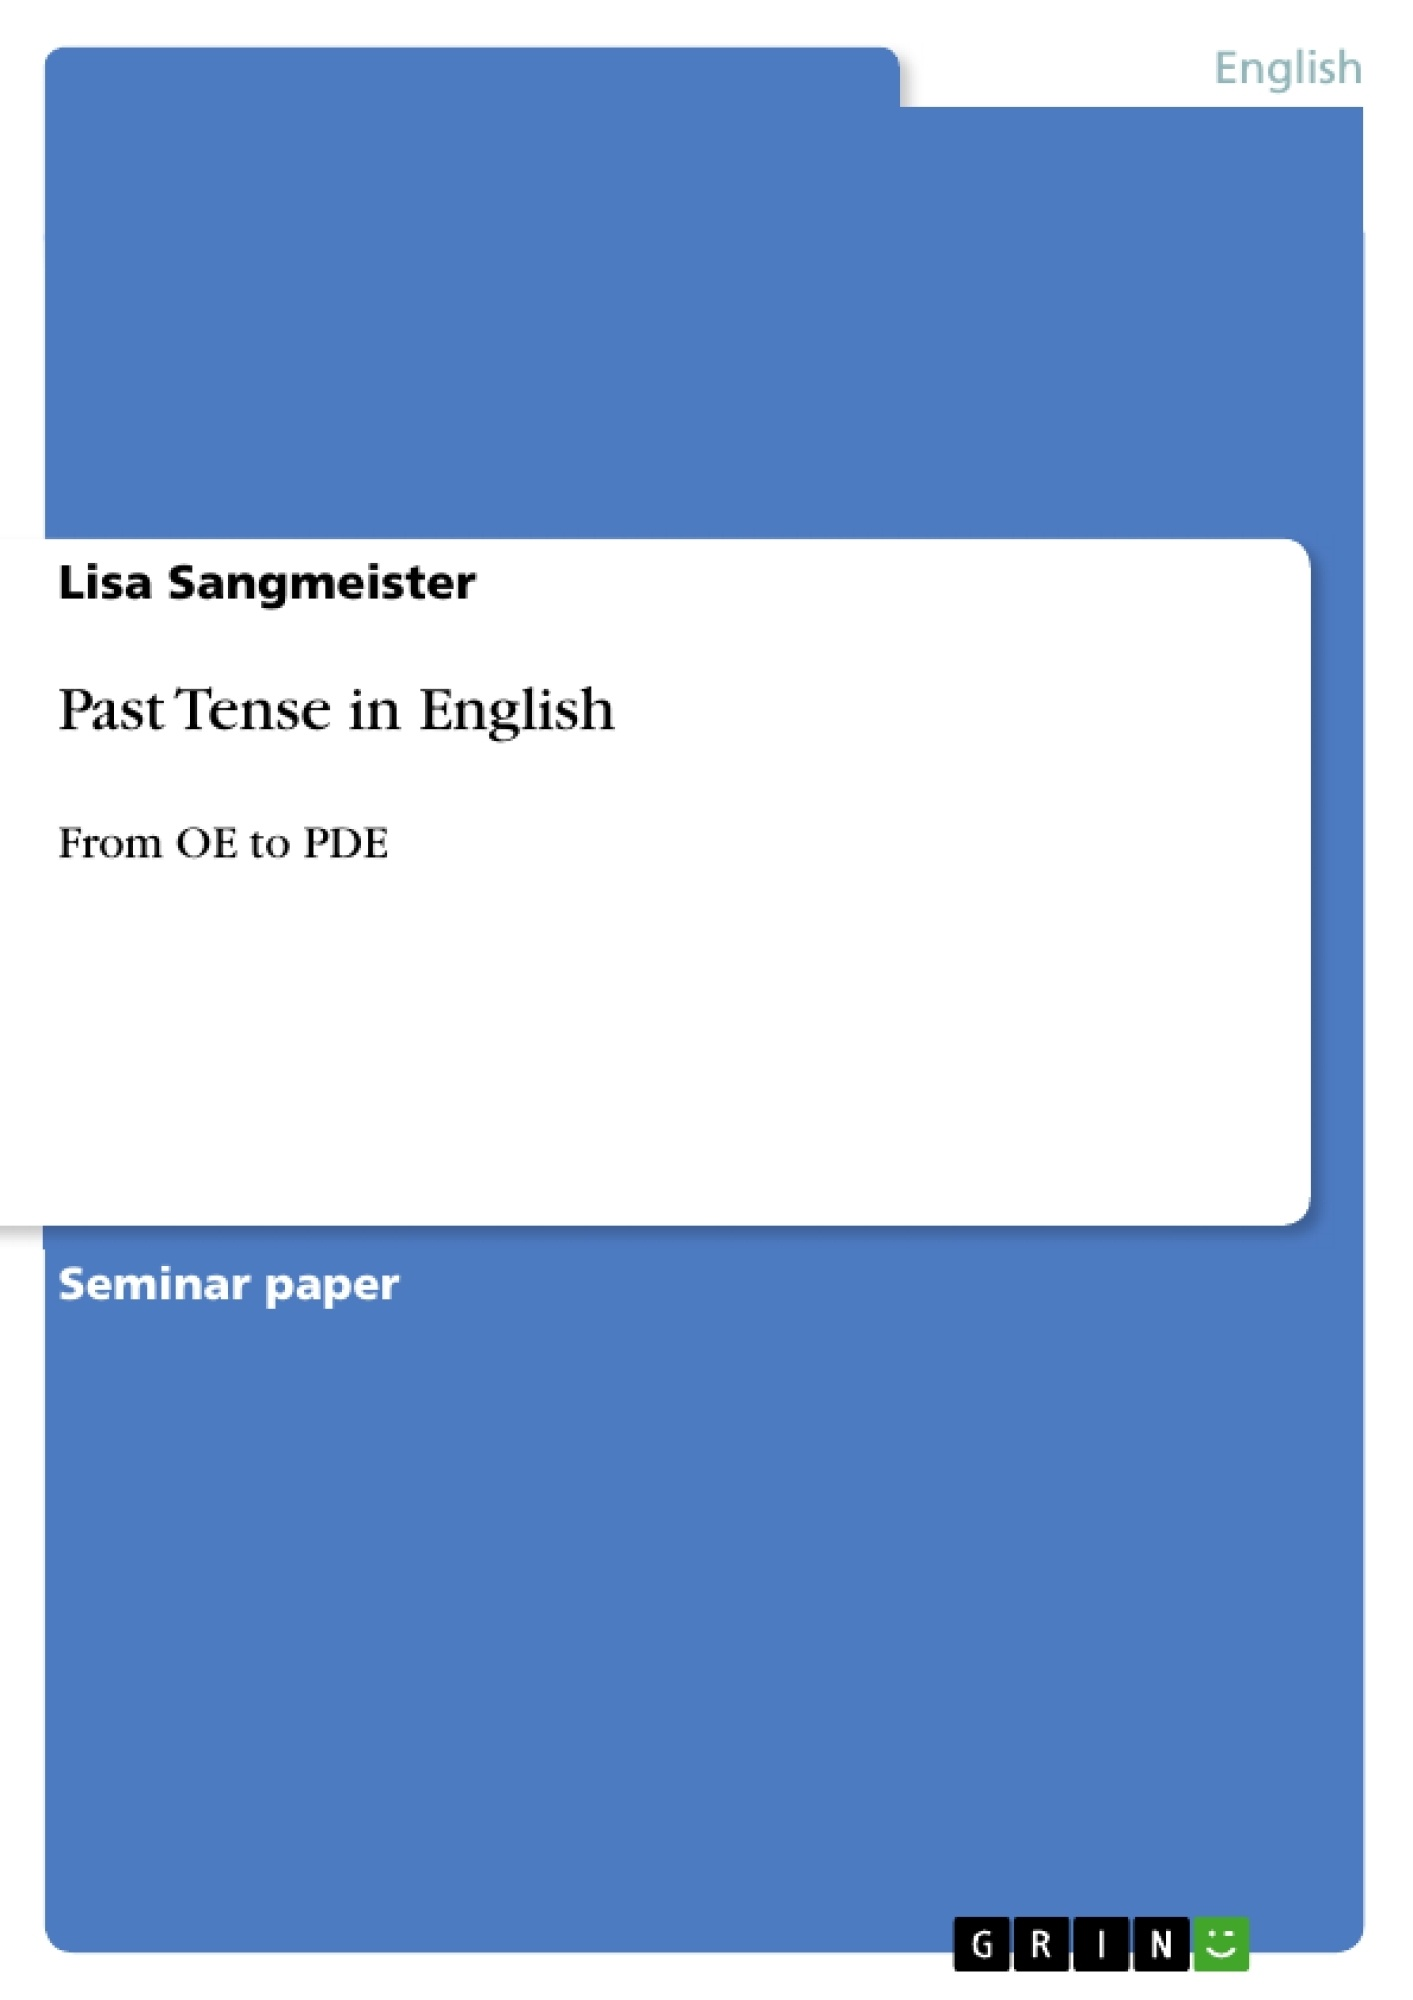 Title: Past Tense in English